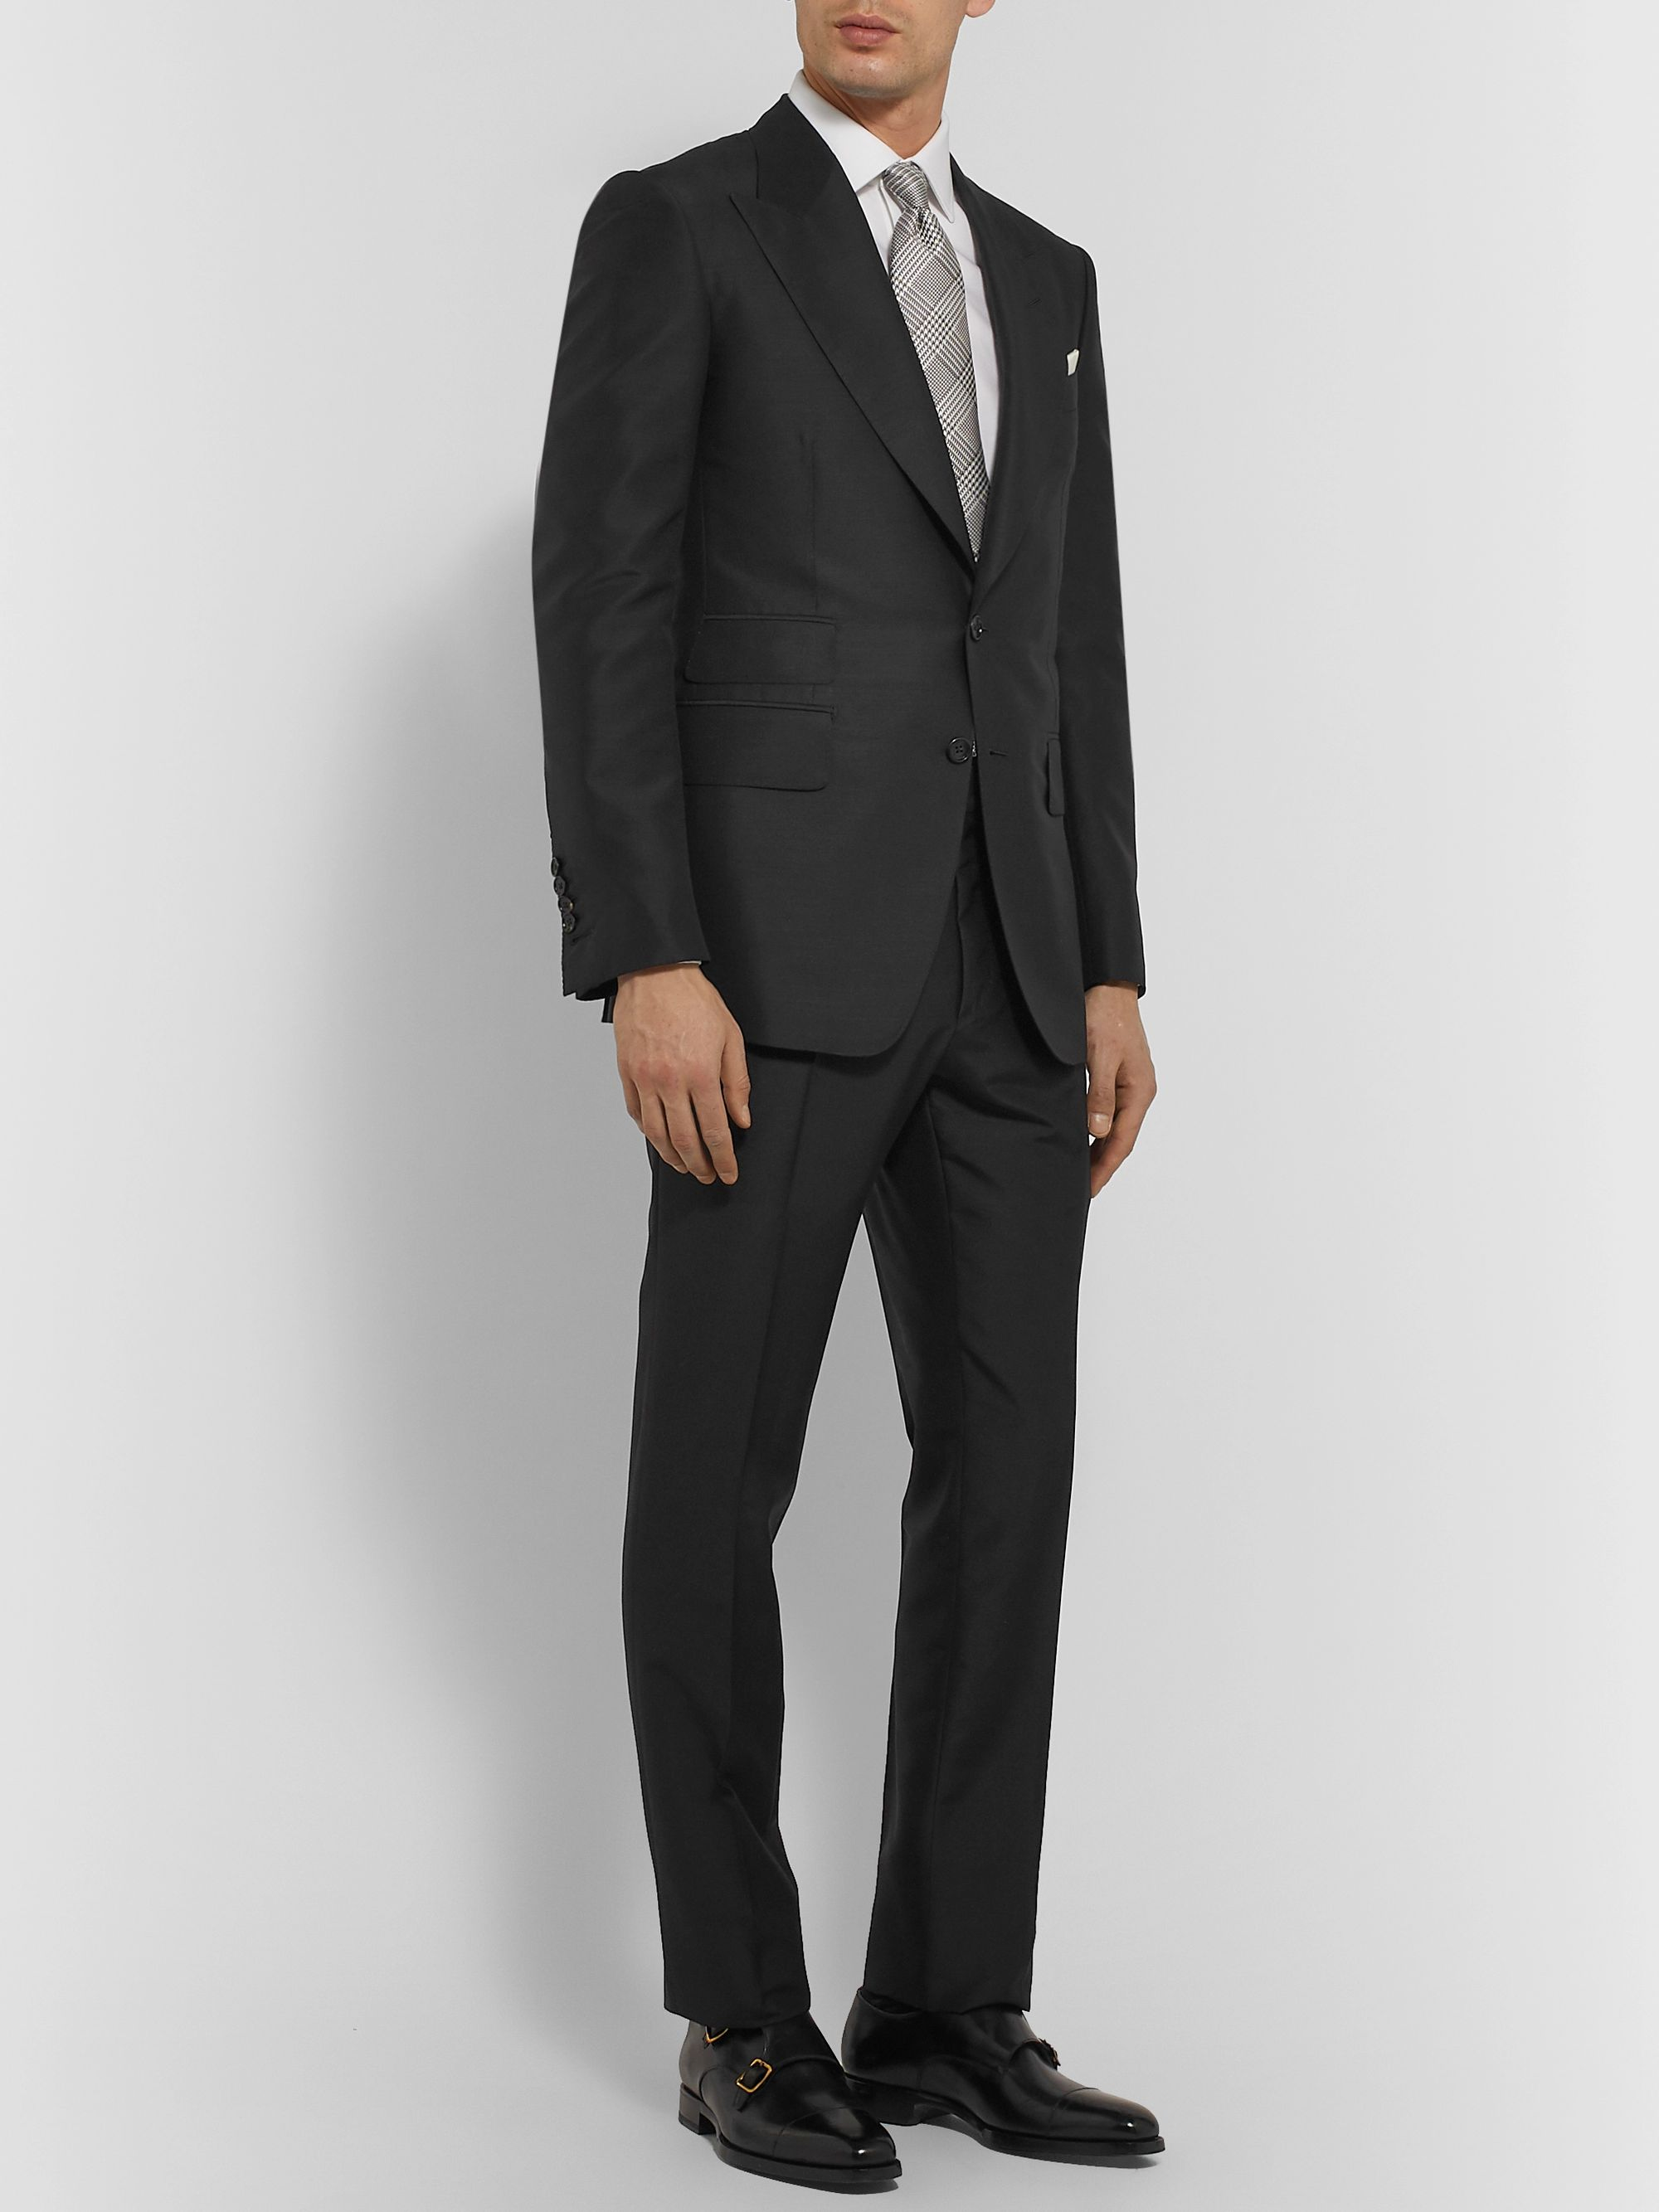 TOM FORD Shelton Mohair and Silk-Blend Suit Jacket